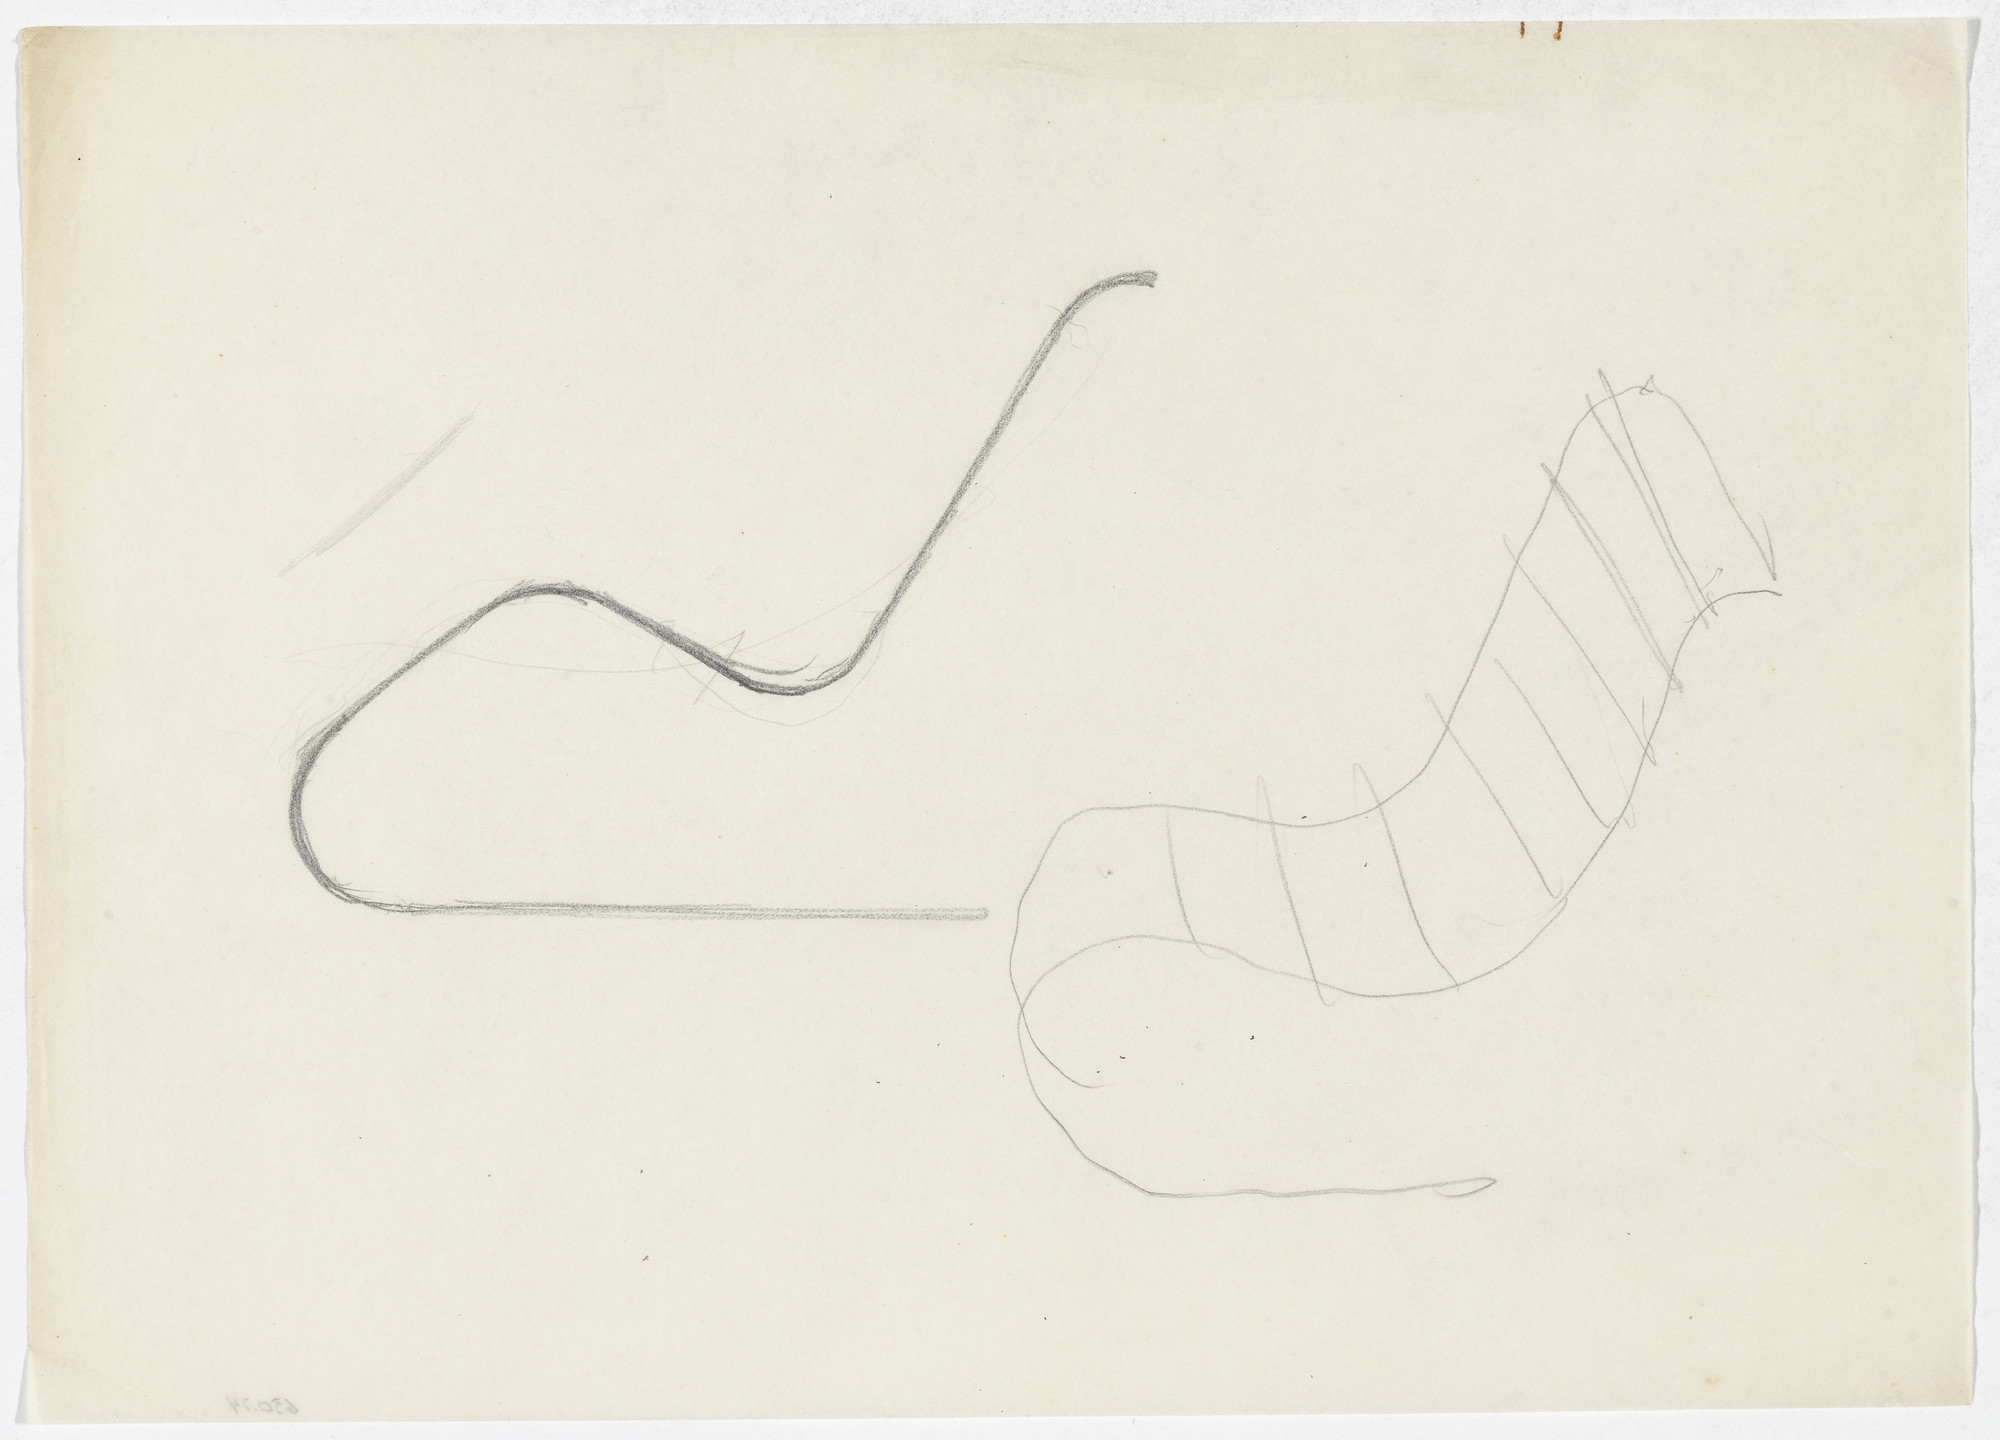 Ludwig Mies van der Rohe. MR100 Reclining Chair (Elevation and perspective sketch). early 1930s